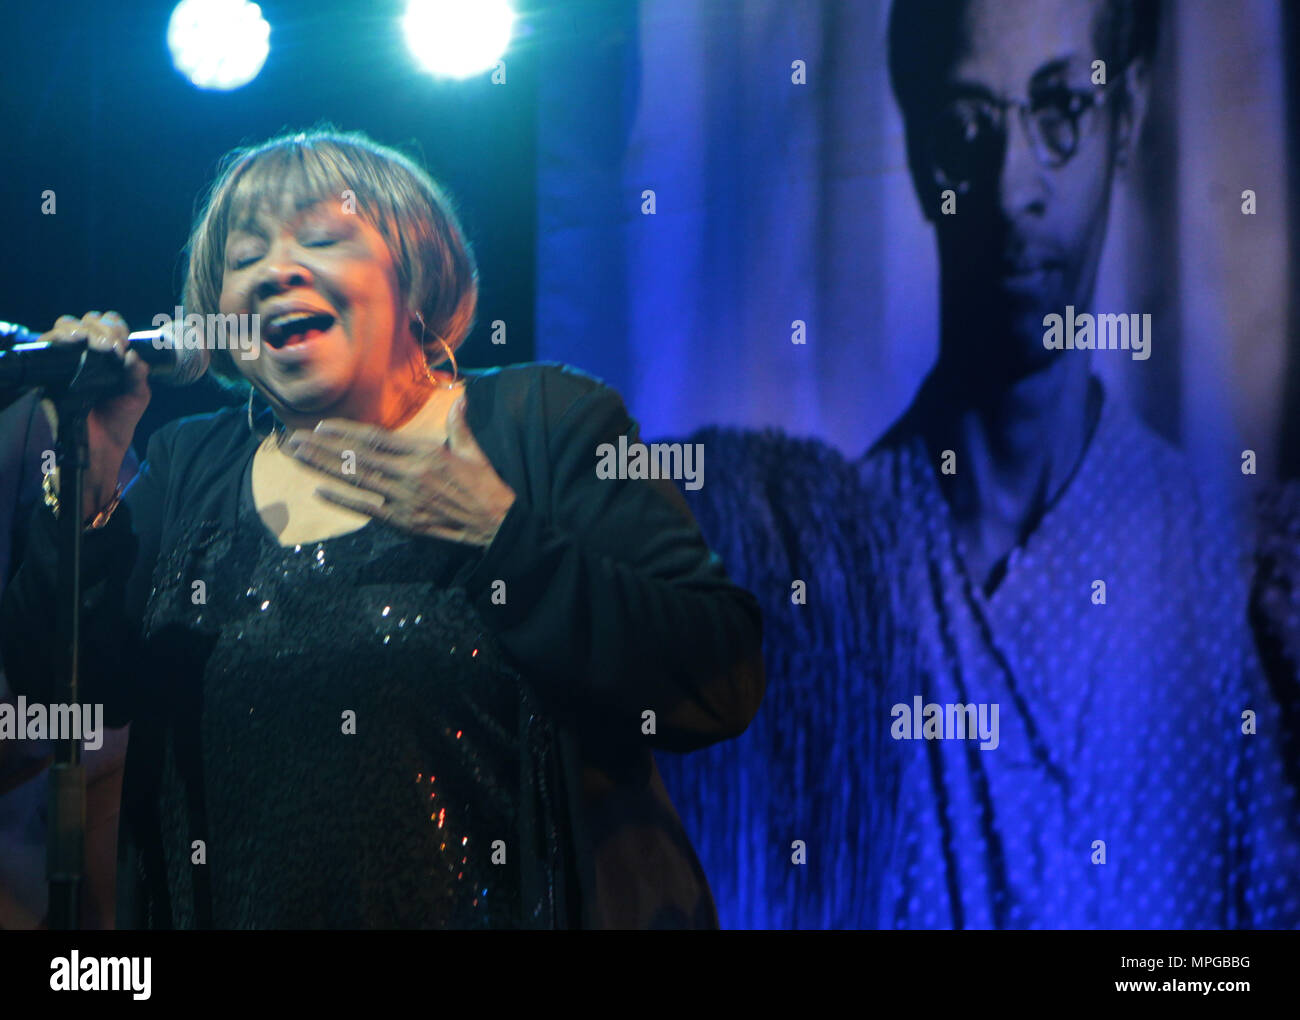 New York, NY, USA. 22nd May, 2018. Recording Artist Mavis Staples performs during the Gordon Parks Foundation Awards Dinner & Auctionn: Celebrating the Arts & Humanitarianism held at Cipriani 42nd Street on May 22, 2018 in New York City. Credit: Mpi43/Media Punch/Alamy Live News - Stock Image